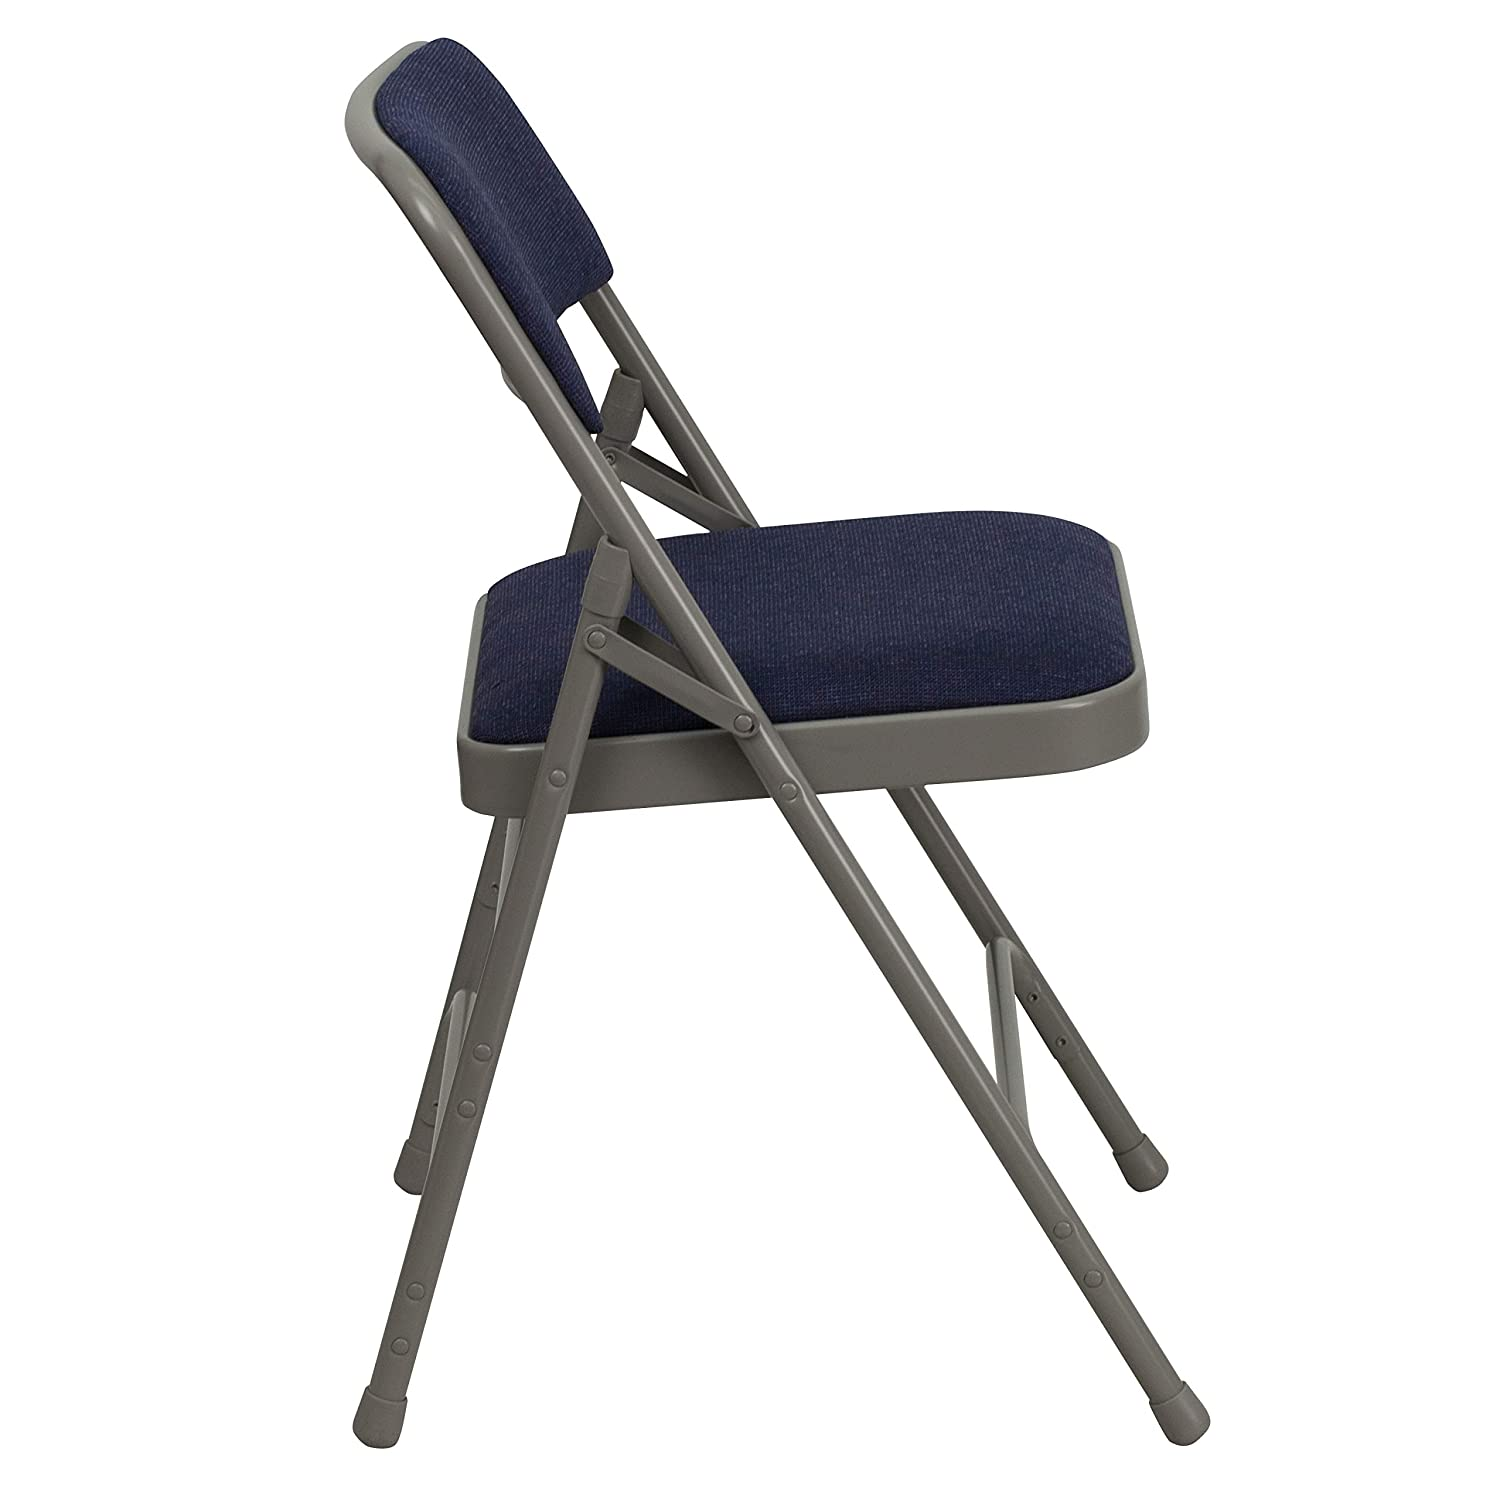 Hercules Fabric Metal Series Curved Triple Braced - Best Folding Chair for Padded